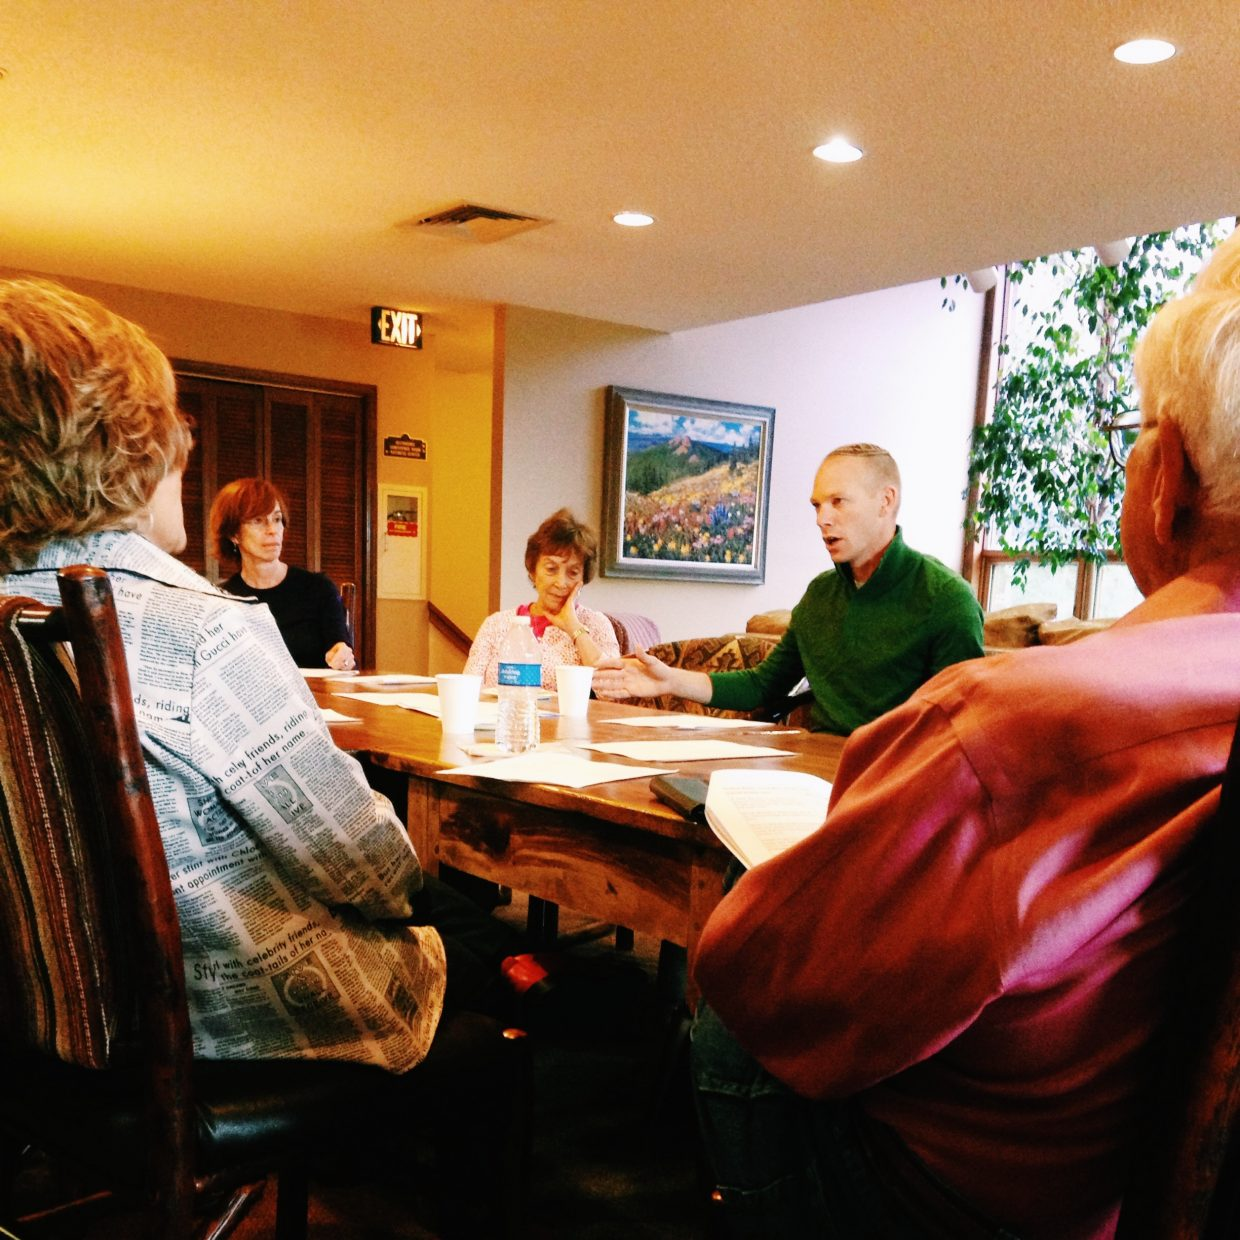 Rabbi Mark Asher Goodman leads a discussion Saturday morning at The Ranch in Steamboat Springs.